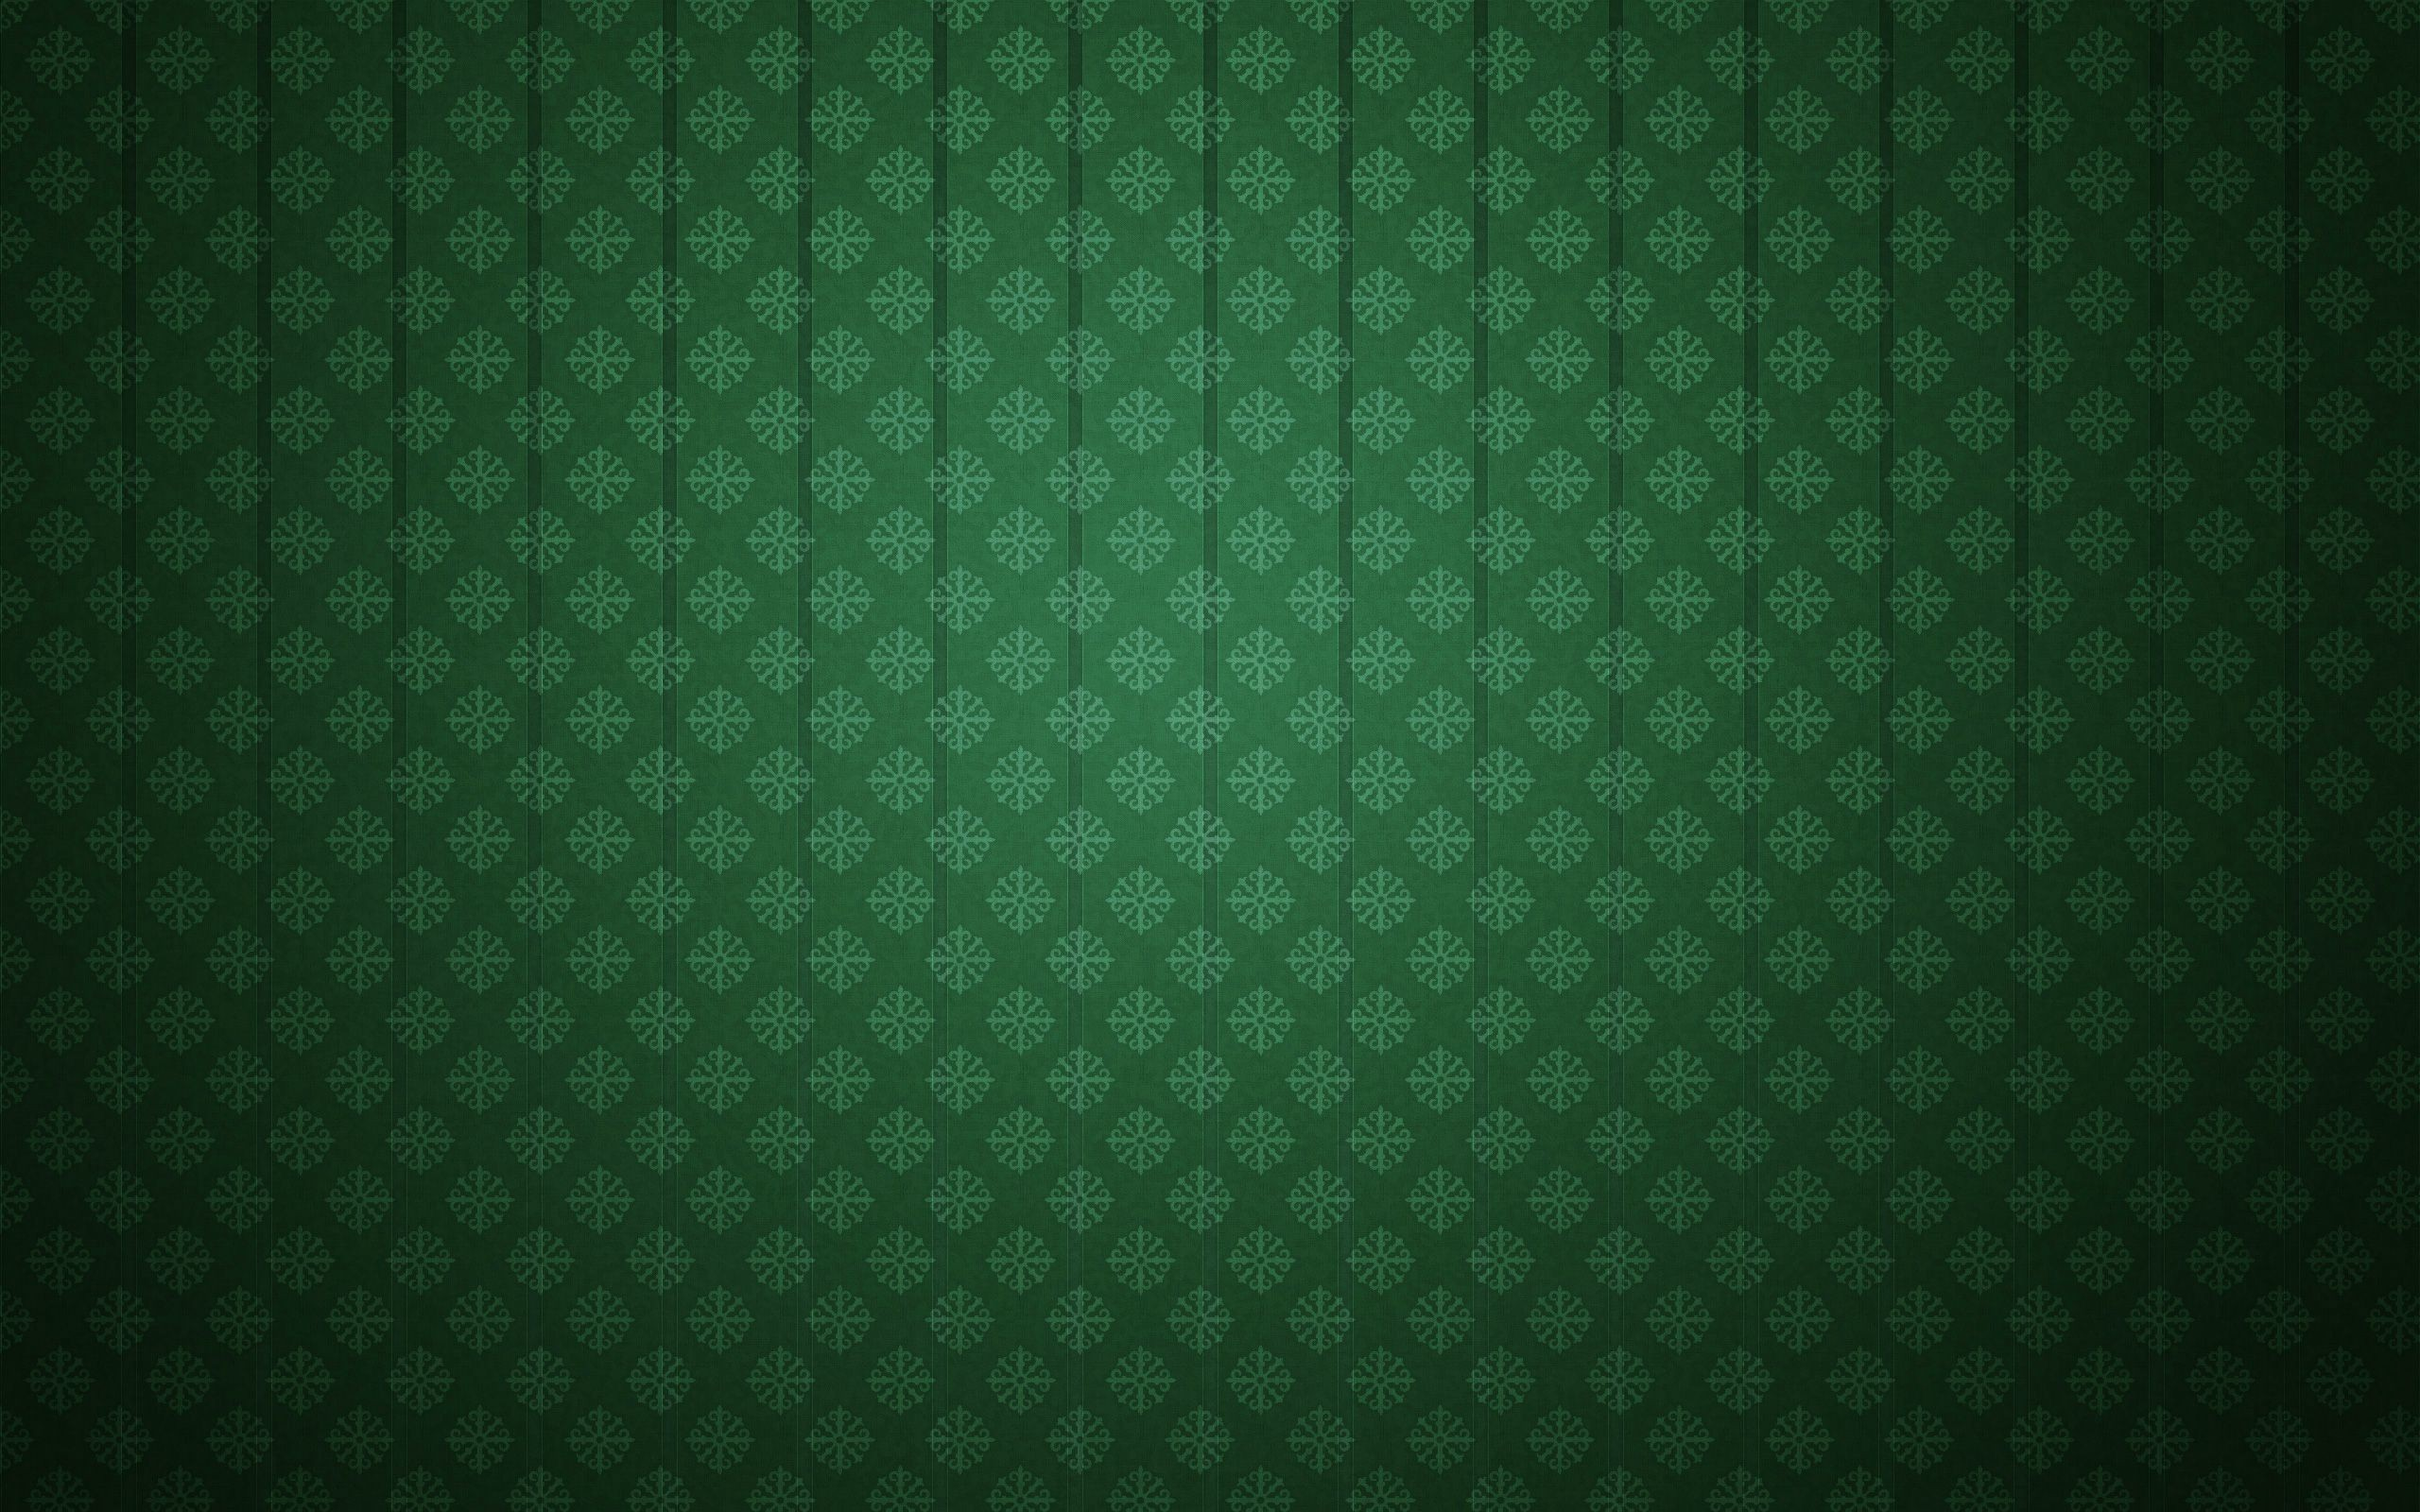 Textured Wallpaper Backgrounds (61+ Images